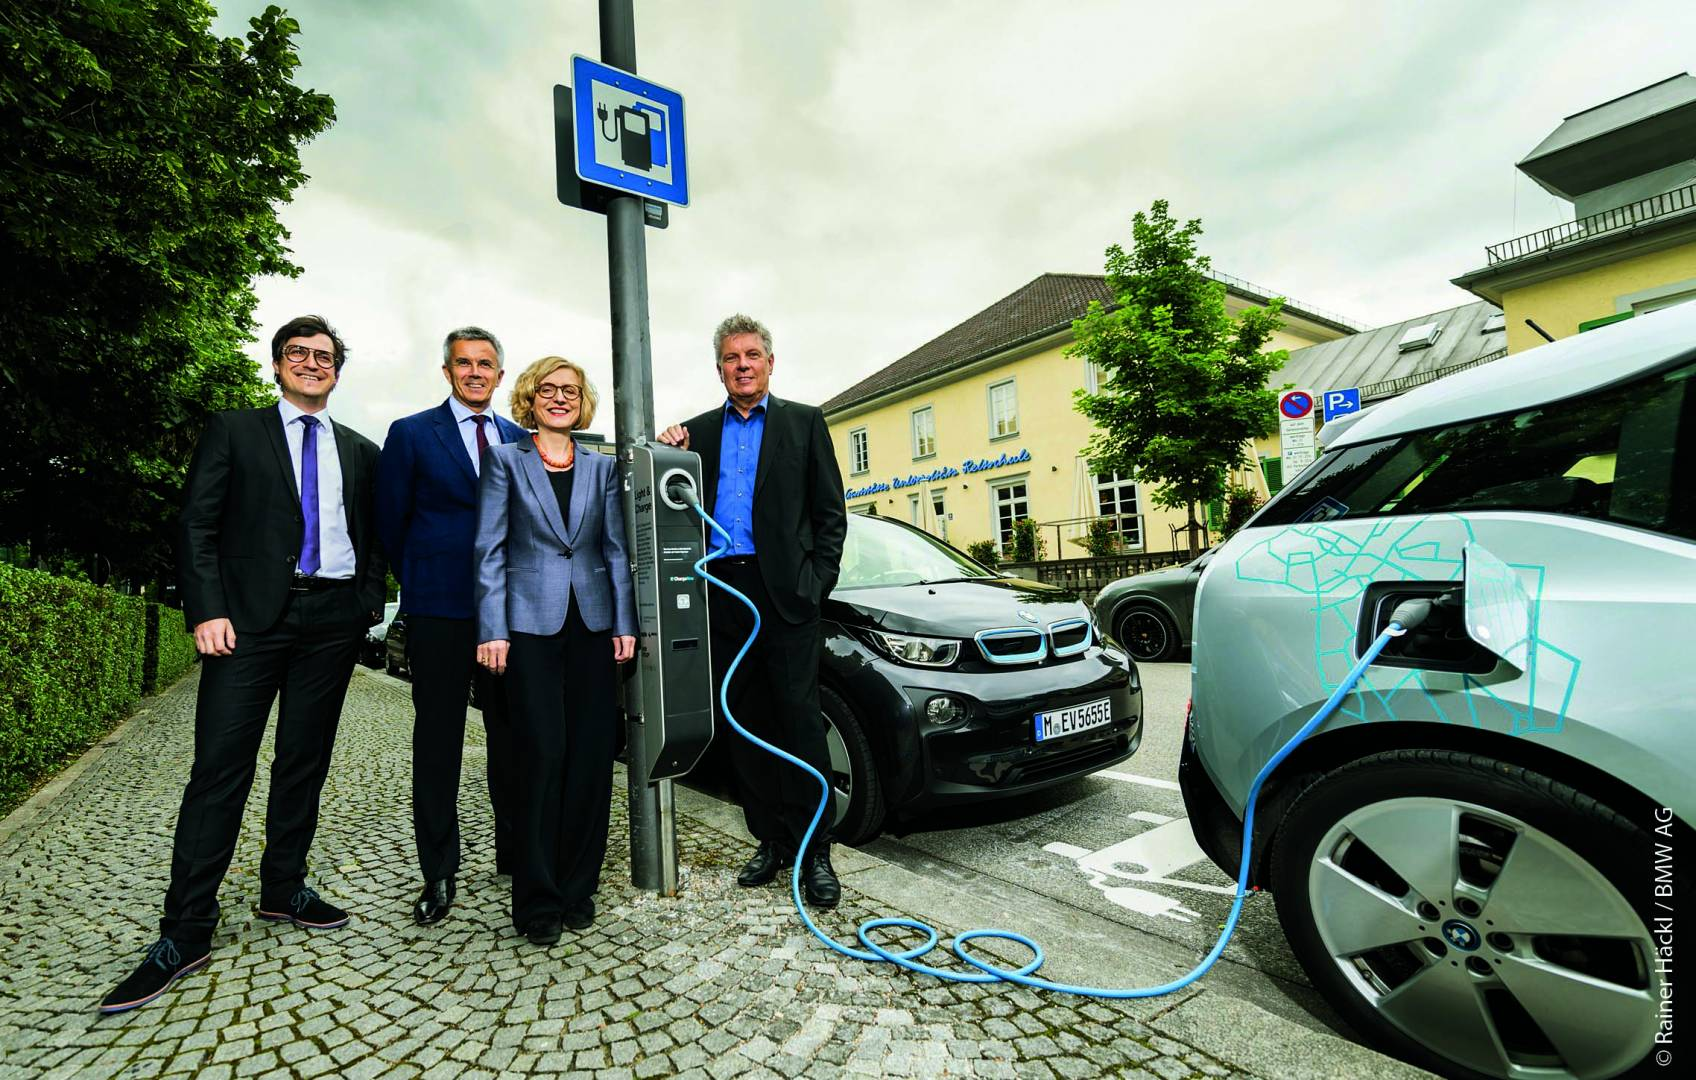 bmw-light-and-charge-press-2016-06-14-7-wb